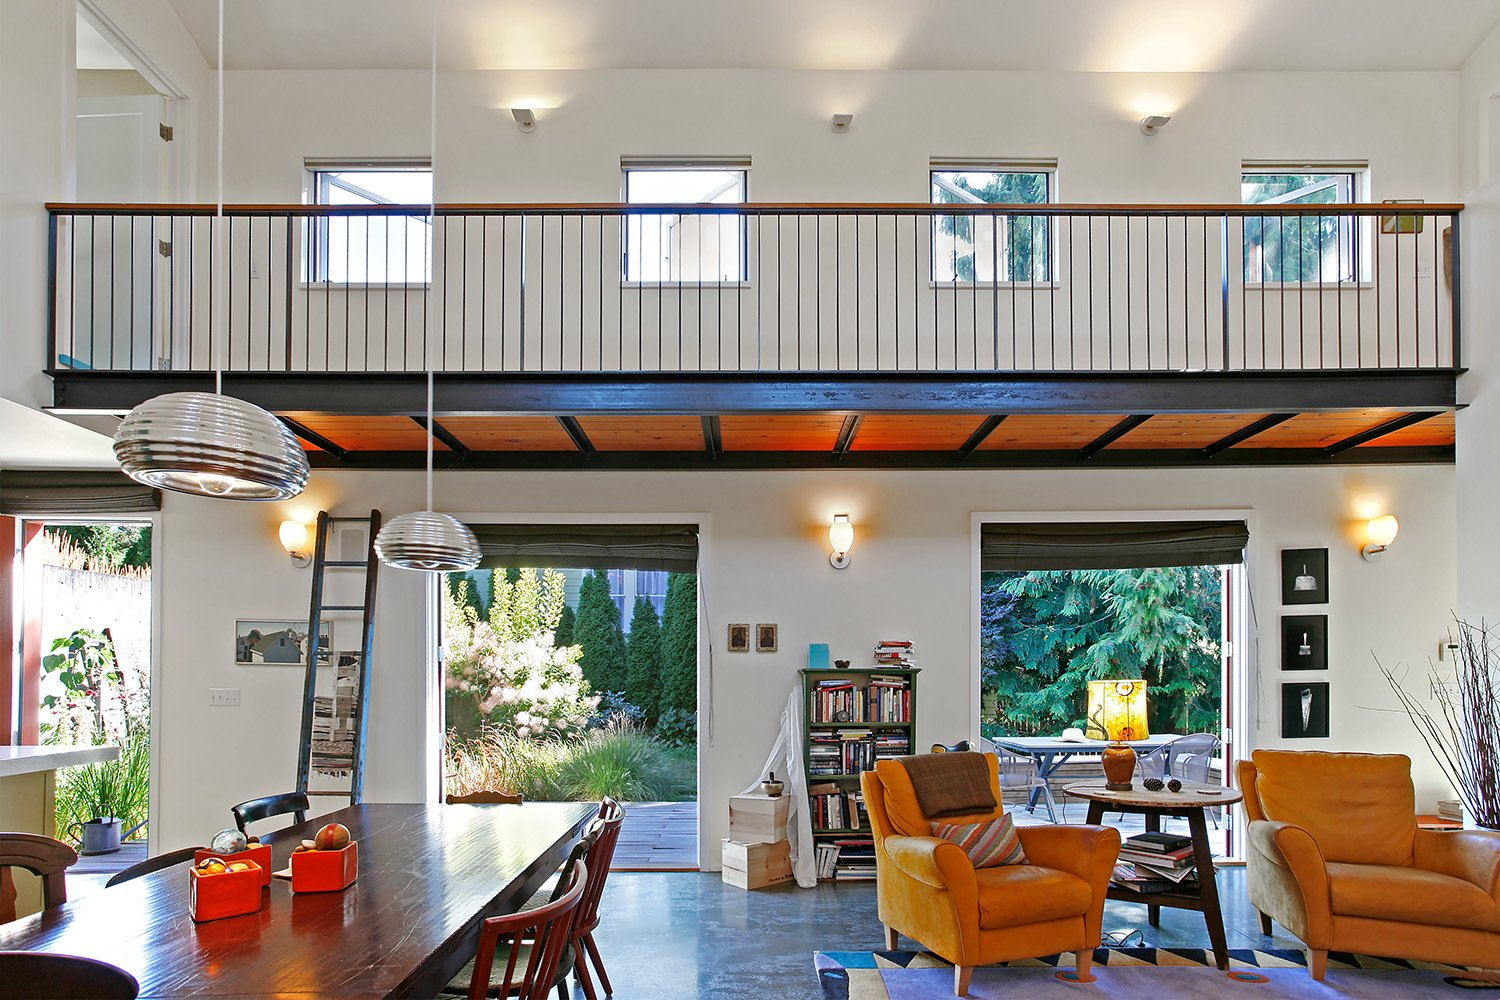 Living Room and Ceiling Lighting  House for a Mother & Daughter by Robert Hutchison Architecture